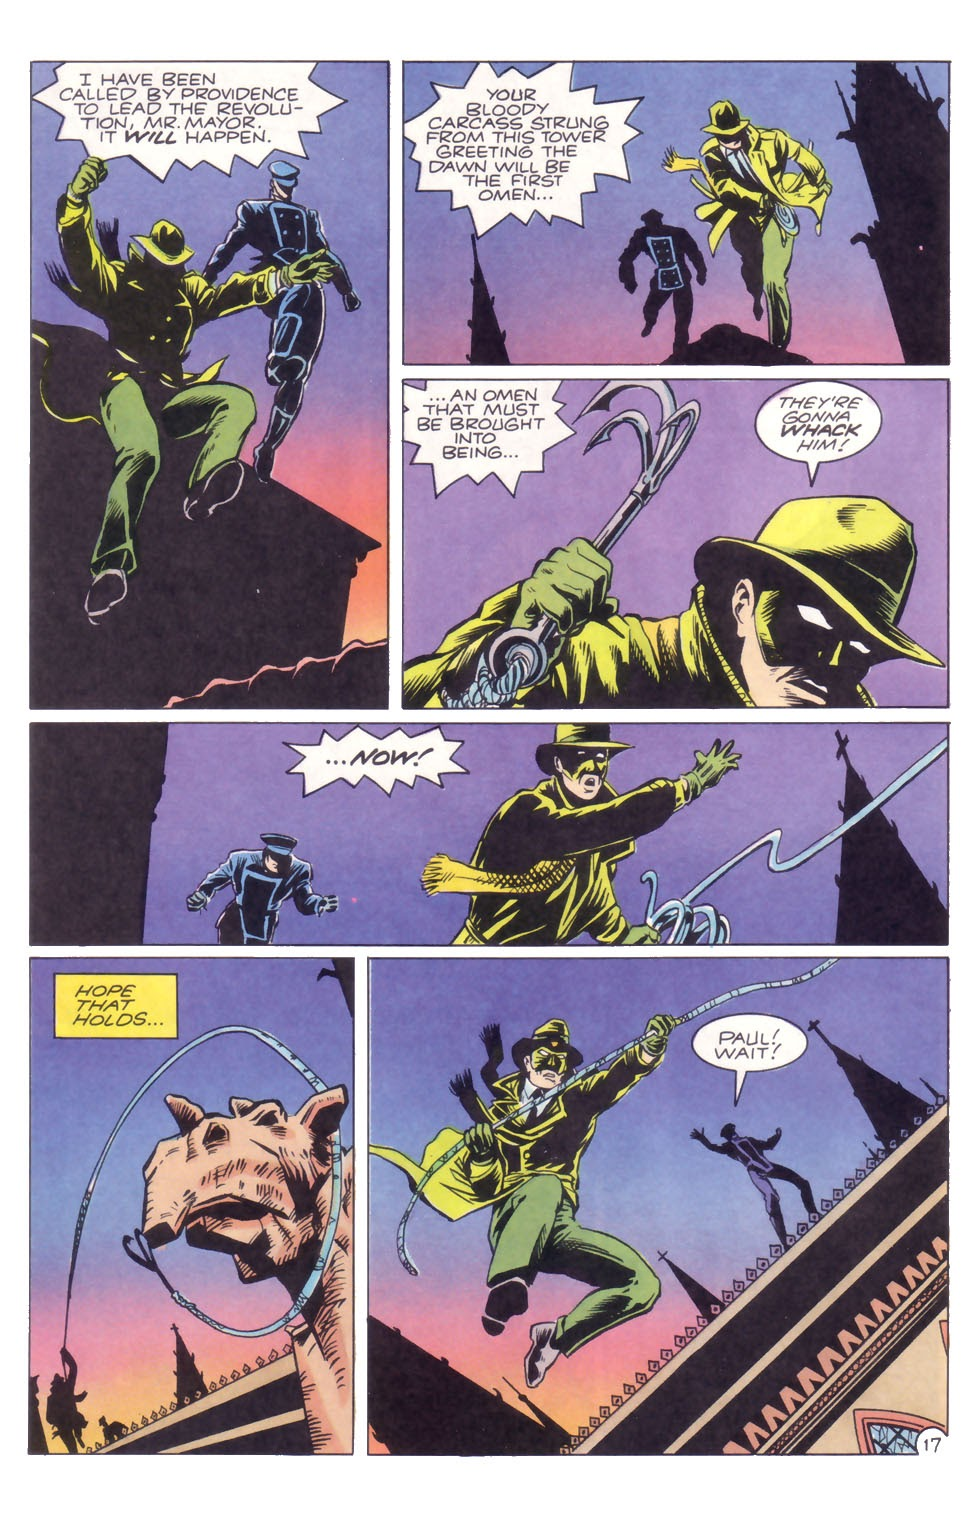 The Green Hornet (1991) #32 pg17, penciled by Rich Suchy & inked by Thom Zahler.